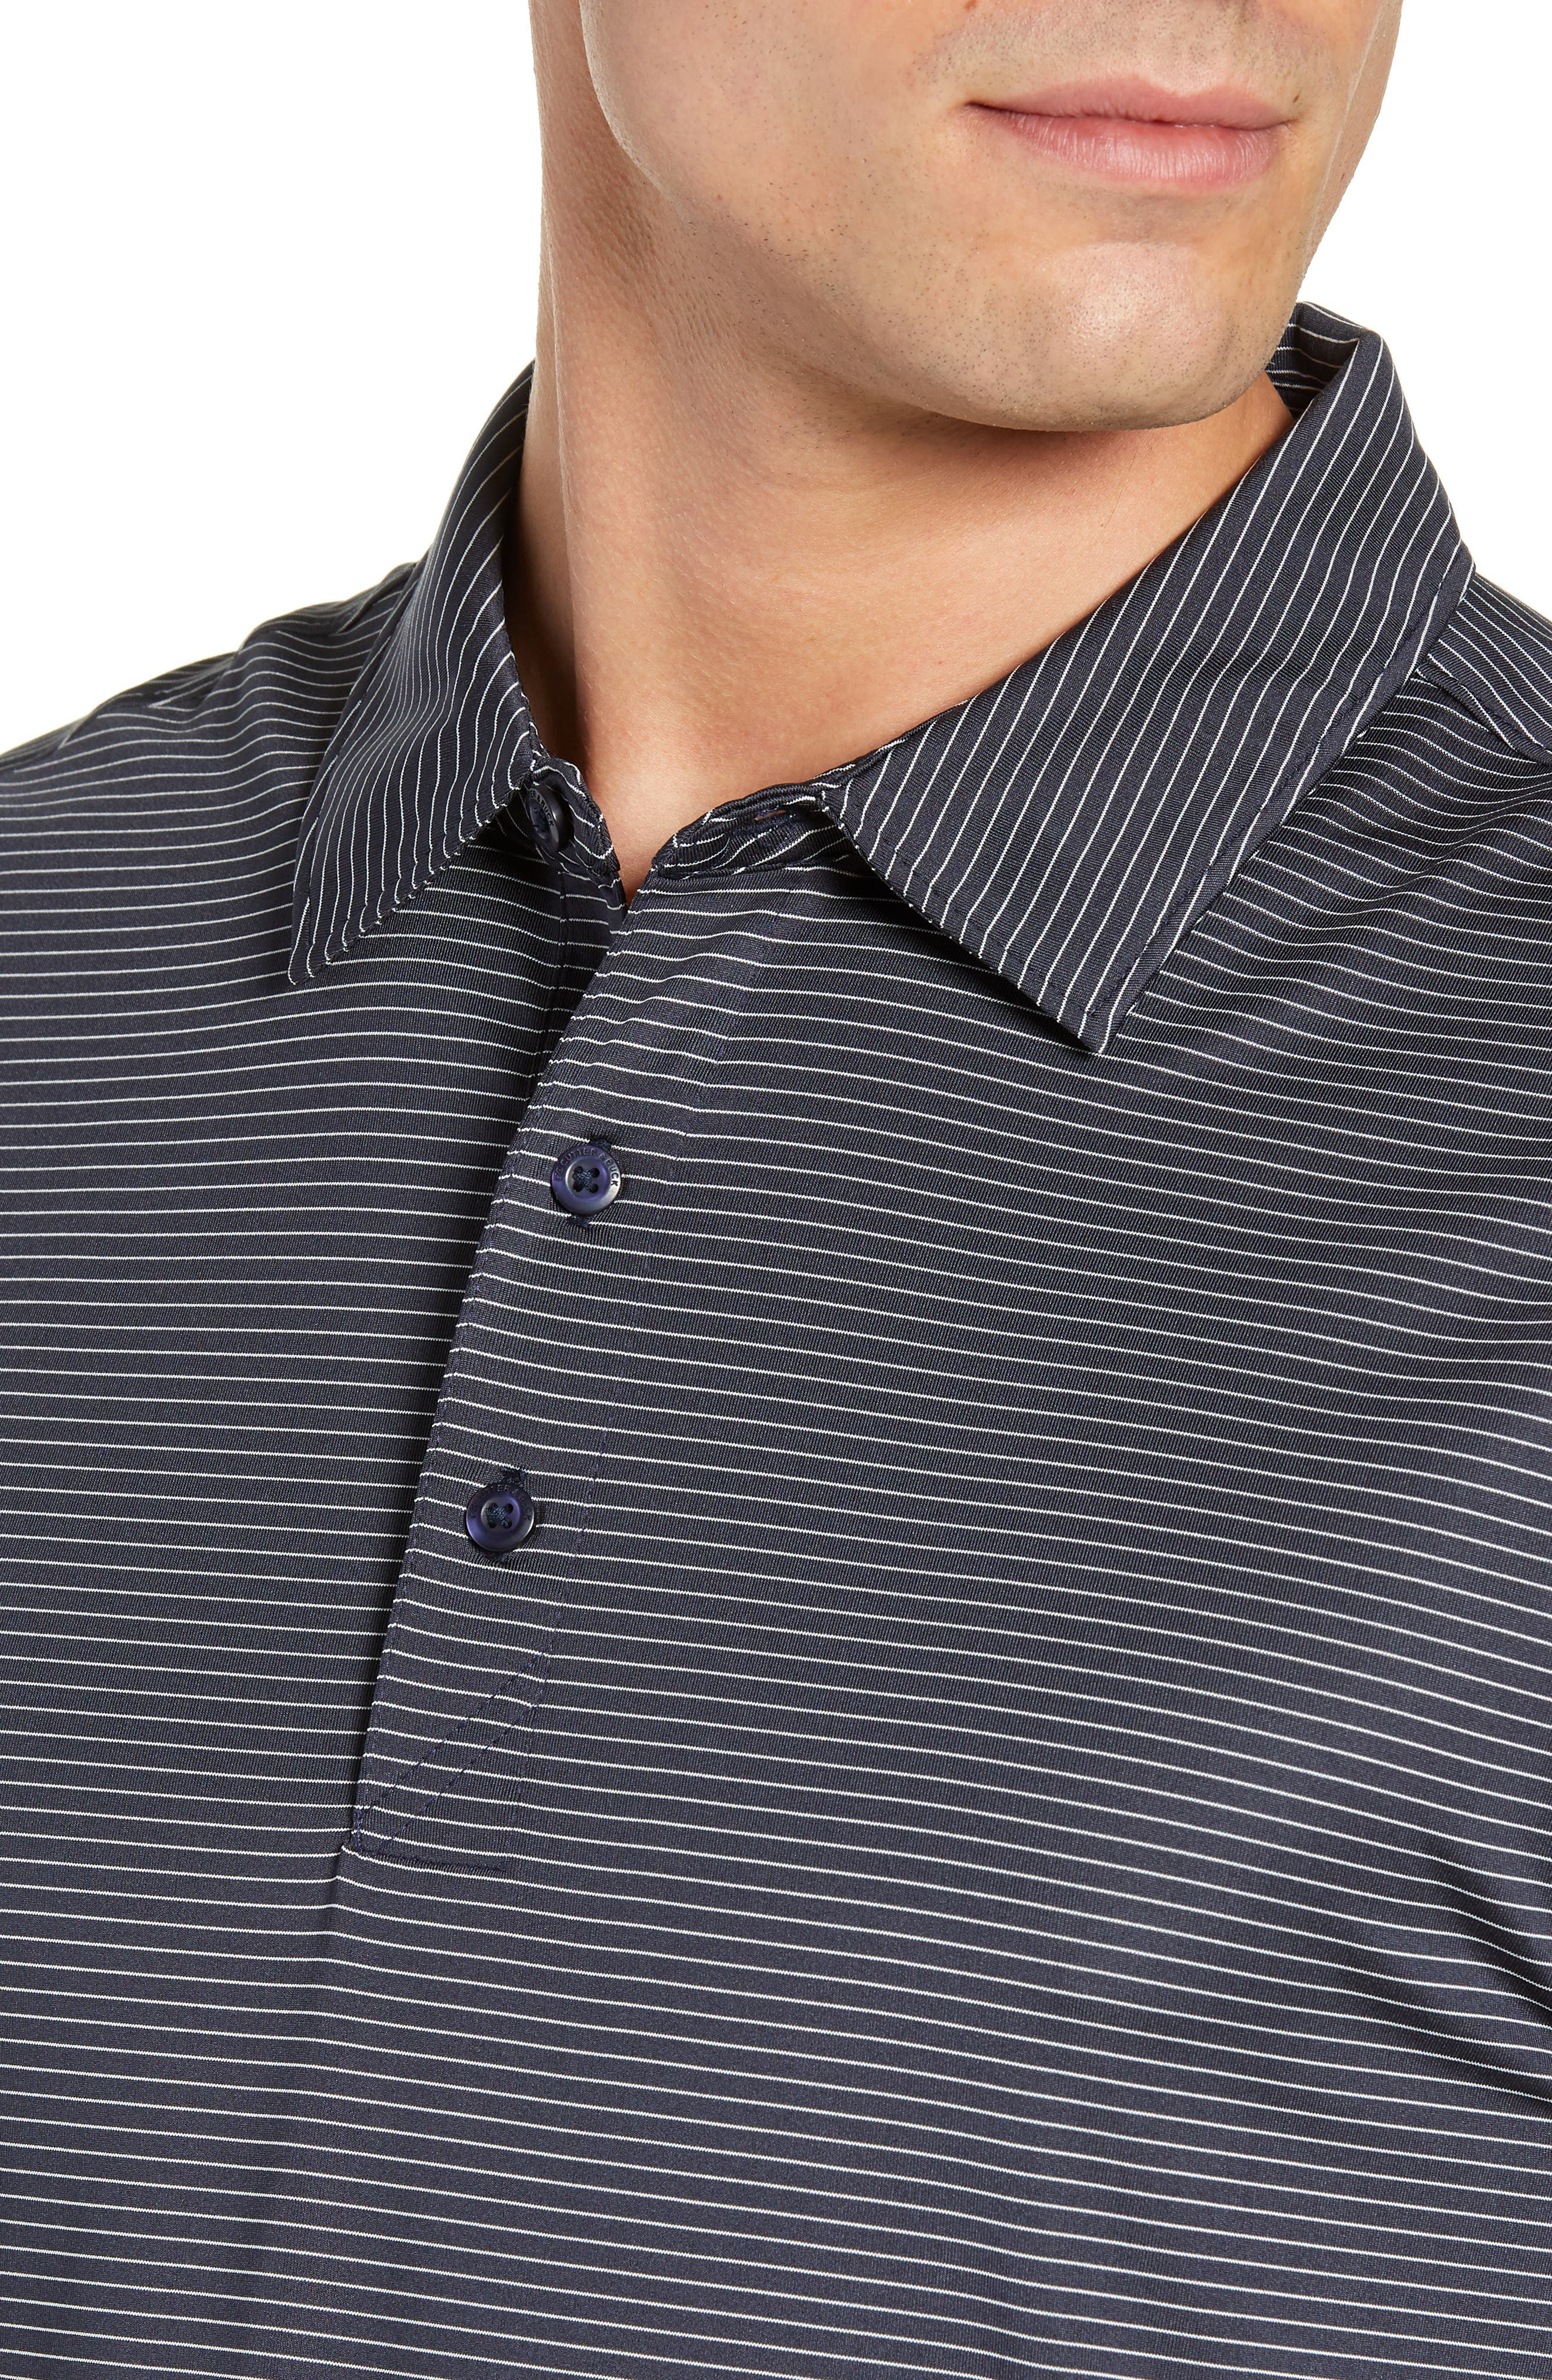 CUTTER & BUCK,                             Prevail Regular Fit Stripe Polo,                             Alternate thumbnail 4, color,                             LIBERTY NAVY